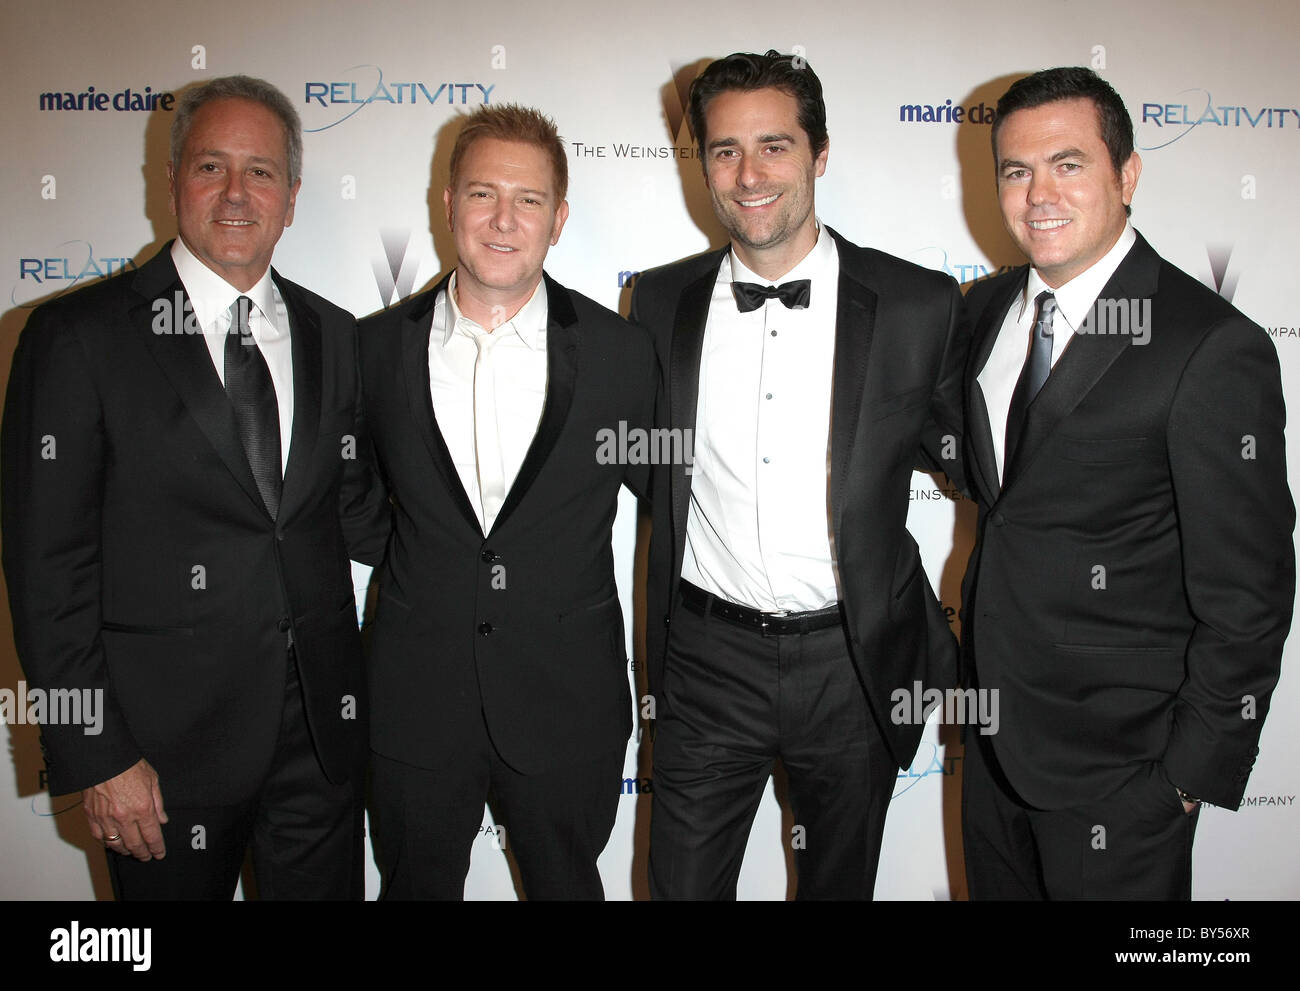 RYAN KAVANAUGH PRODUCERS OF THE FIGHTER RELATIVITY MEDIA AND THE WEINSTEIN COMPANY 2011 GOLDEN GLOBES AFTER PARTY - Stock Image